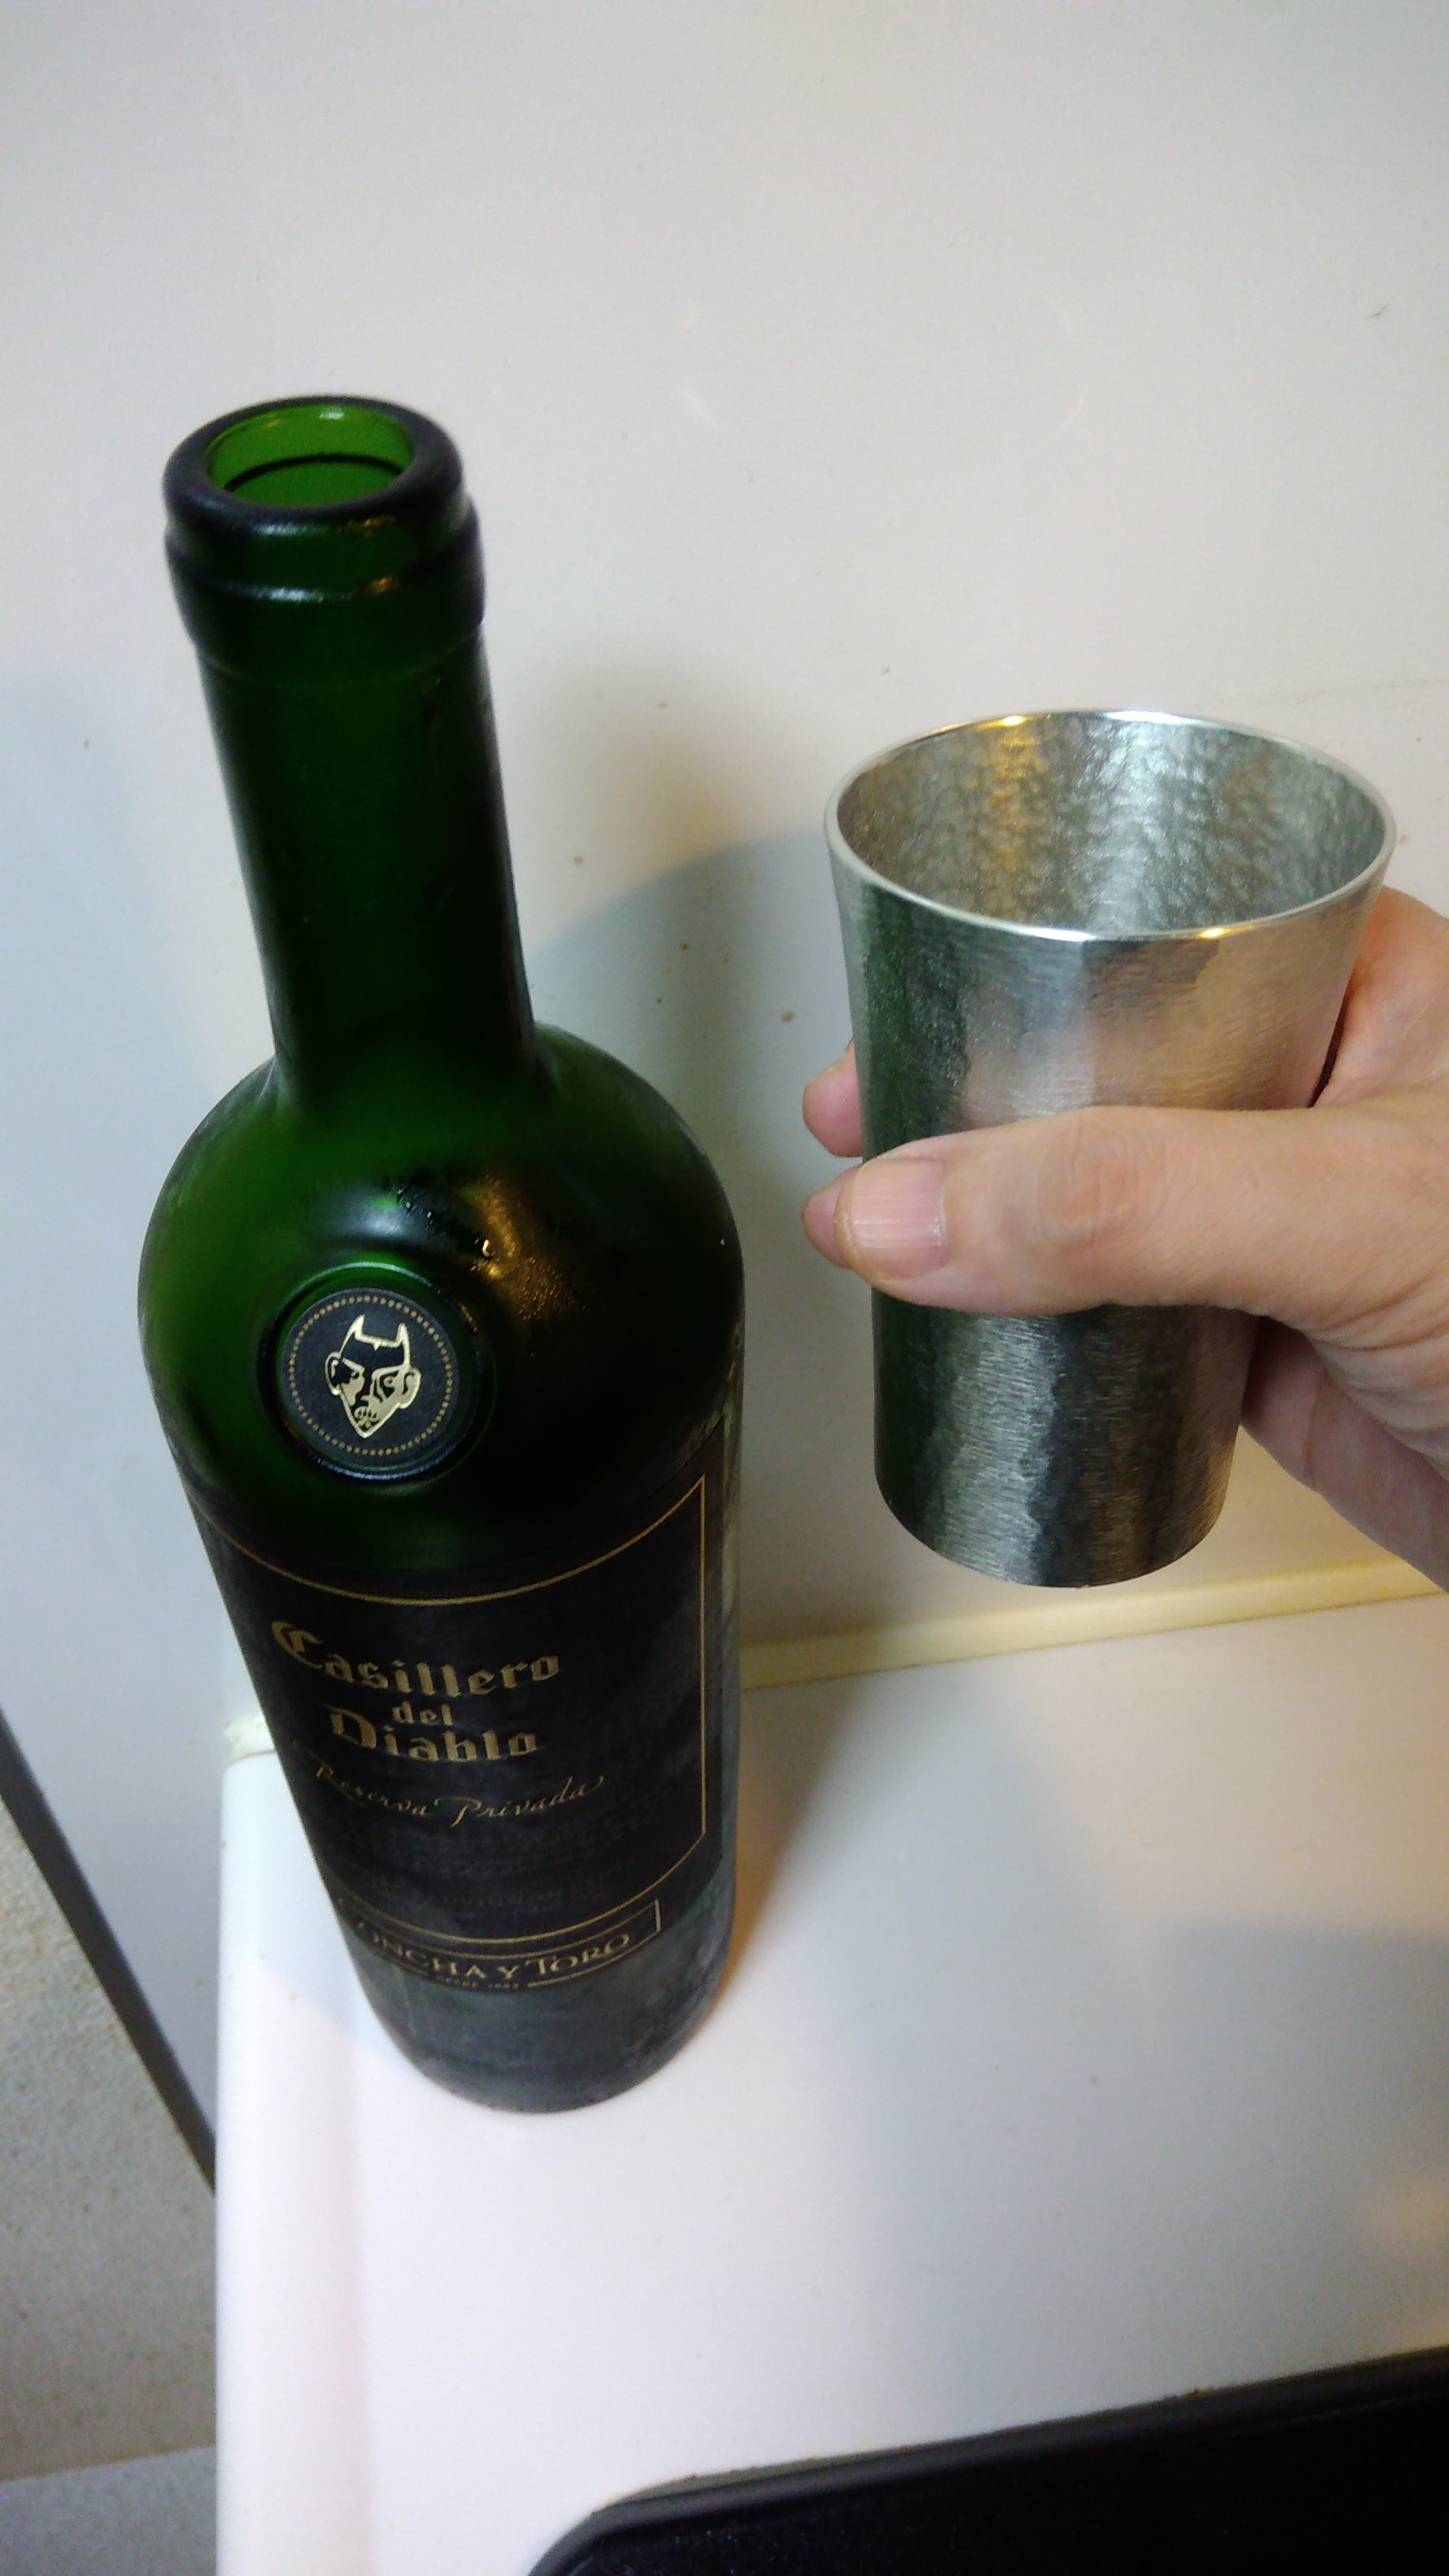 P 20170918 153432 - Tin cup - Best cup to feel coolness in fingers!